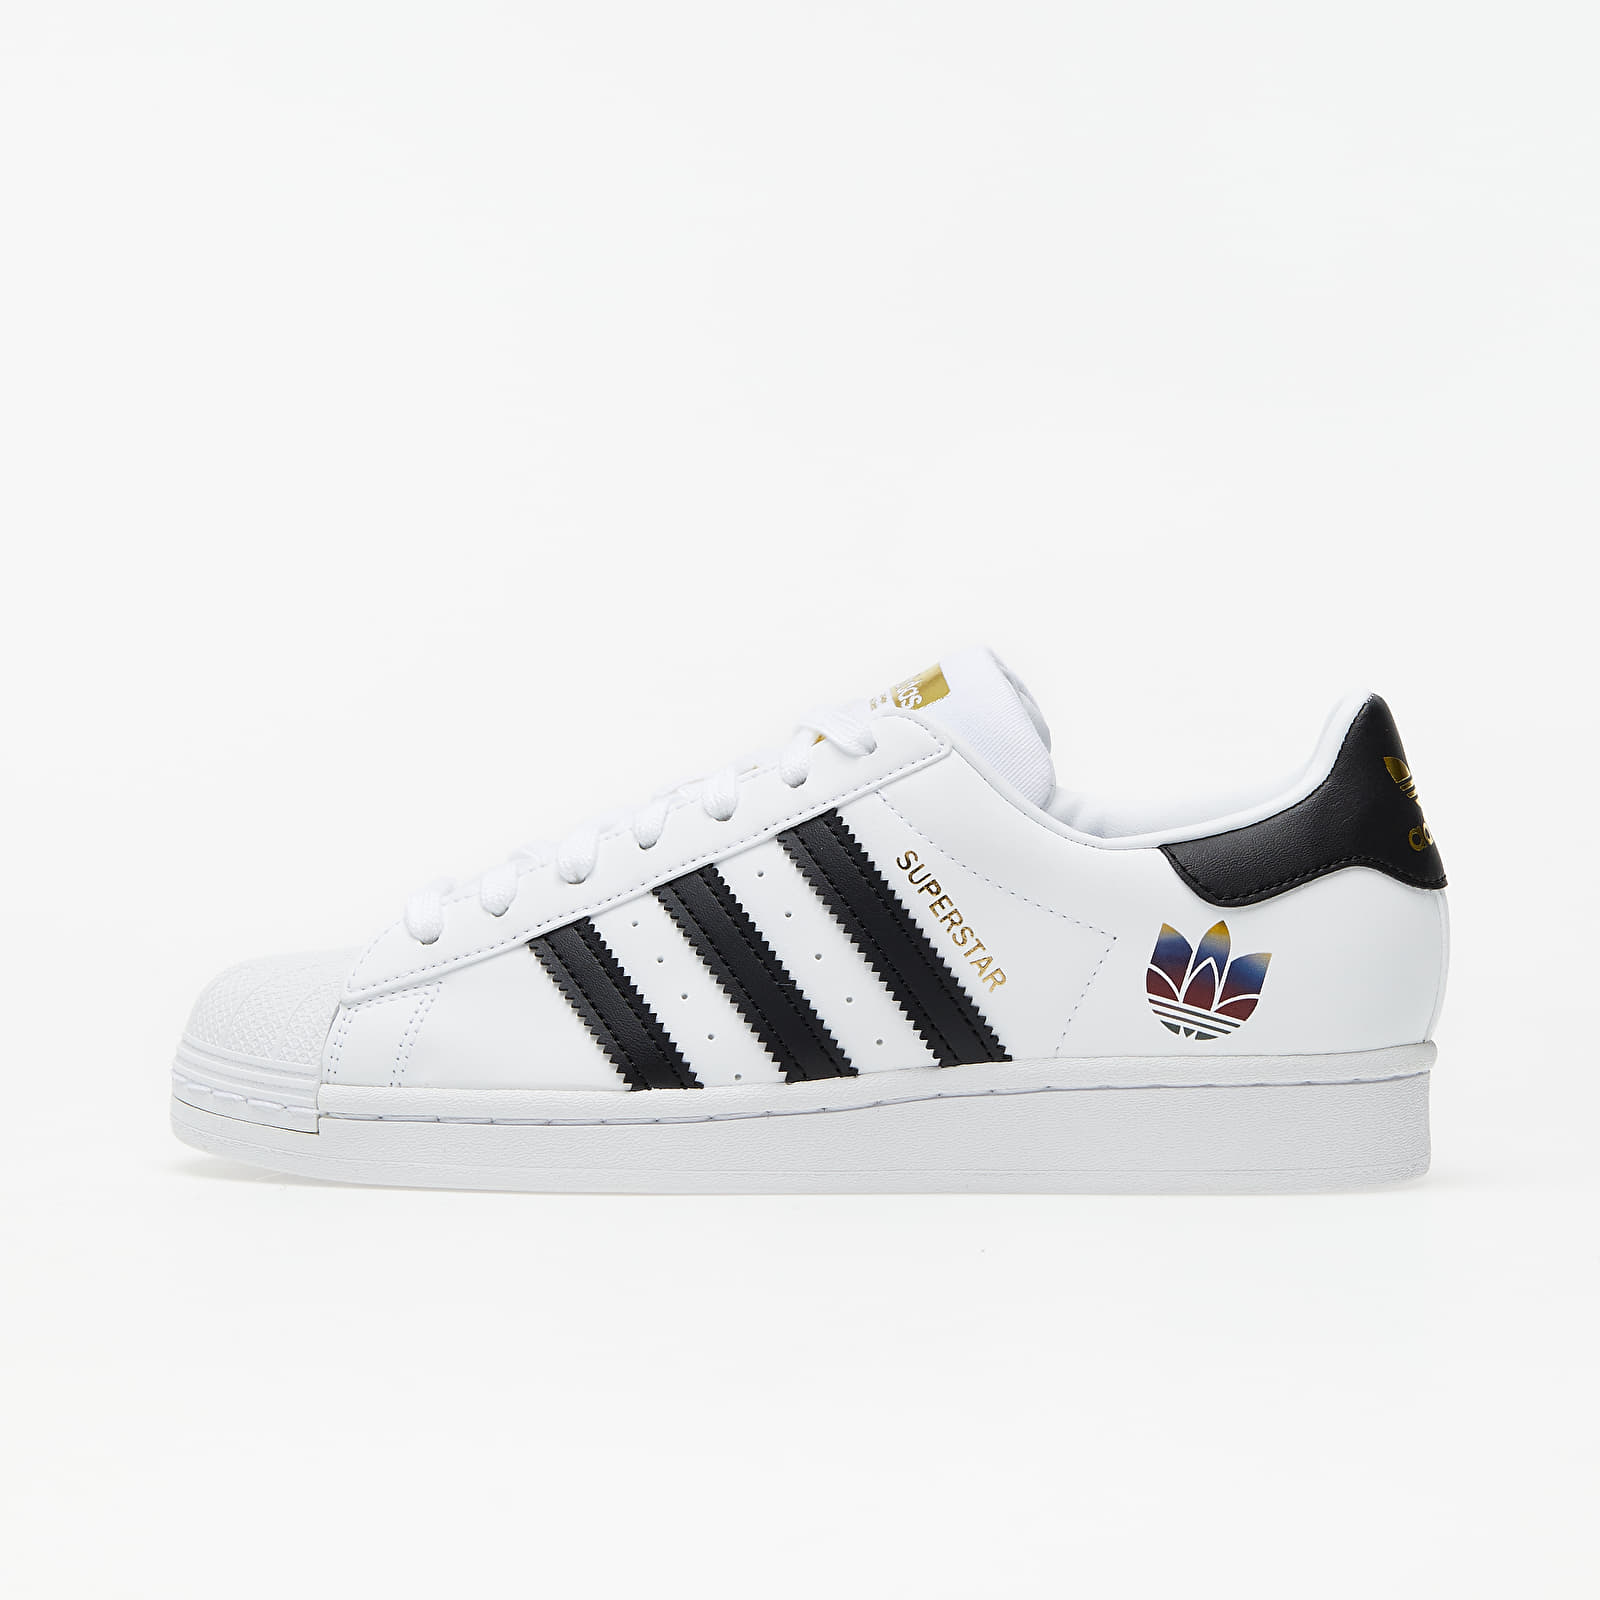 adidas Superstar W Ftw White/ Core Black/ Gold Metalic EUR 38